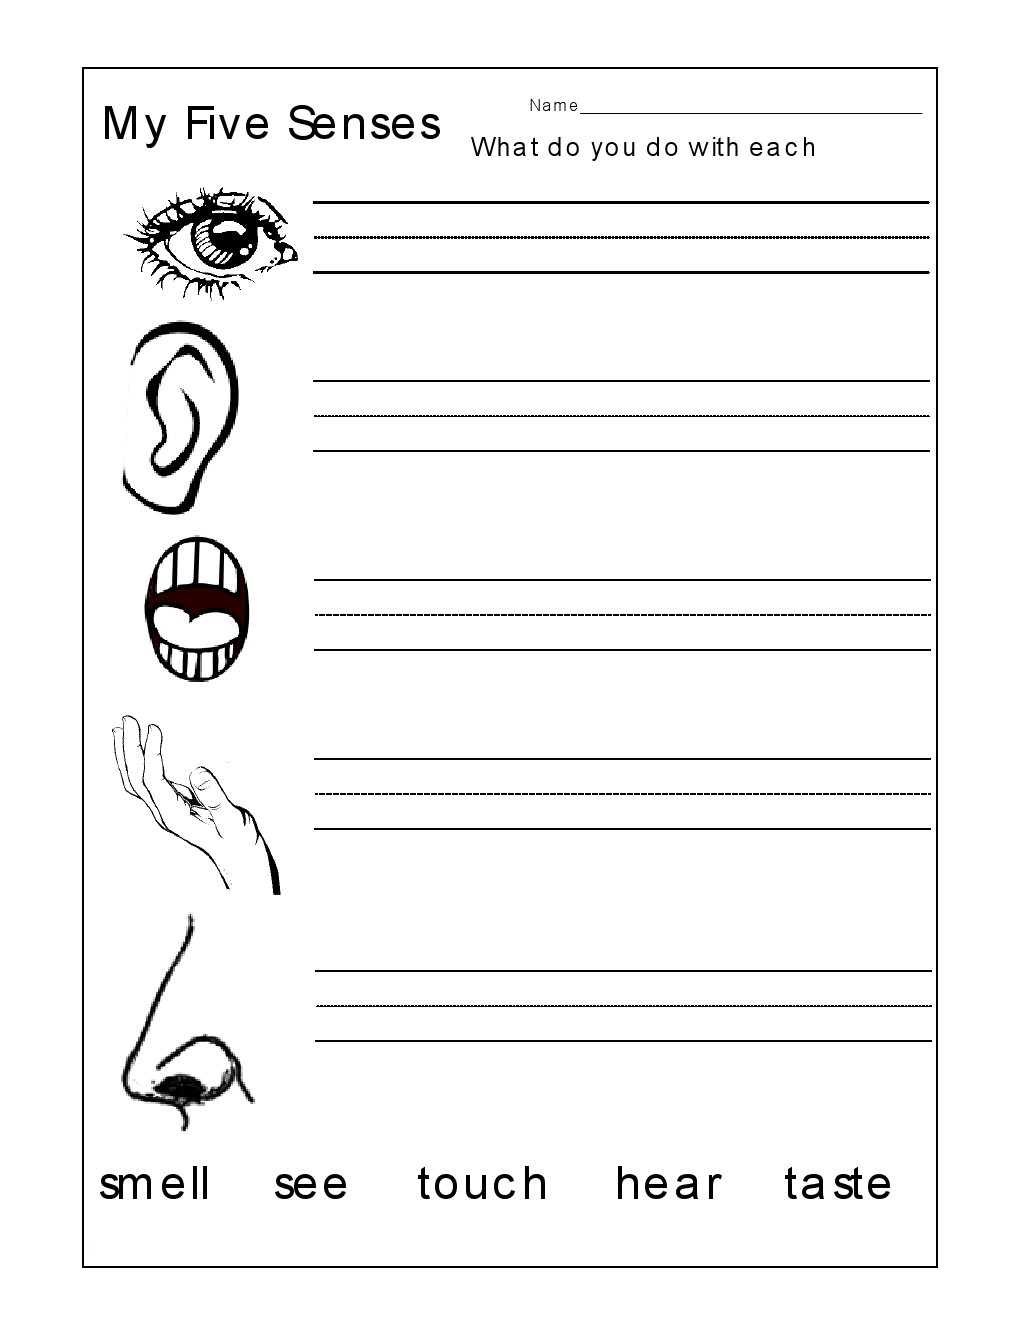 Worksheets Five Senses Worksheet For Kindergarten kindergarten worksheets the 5 senses worksheets